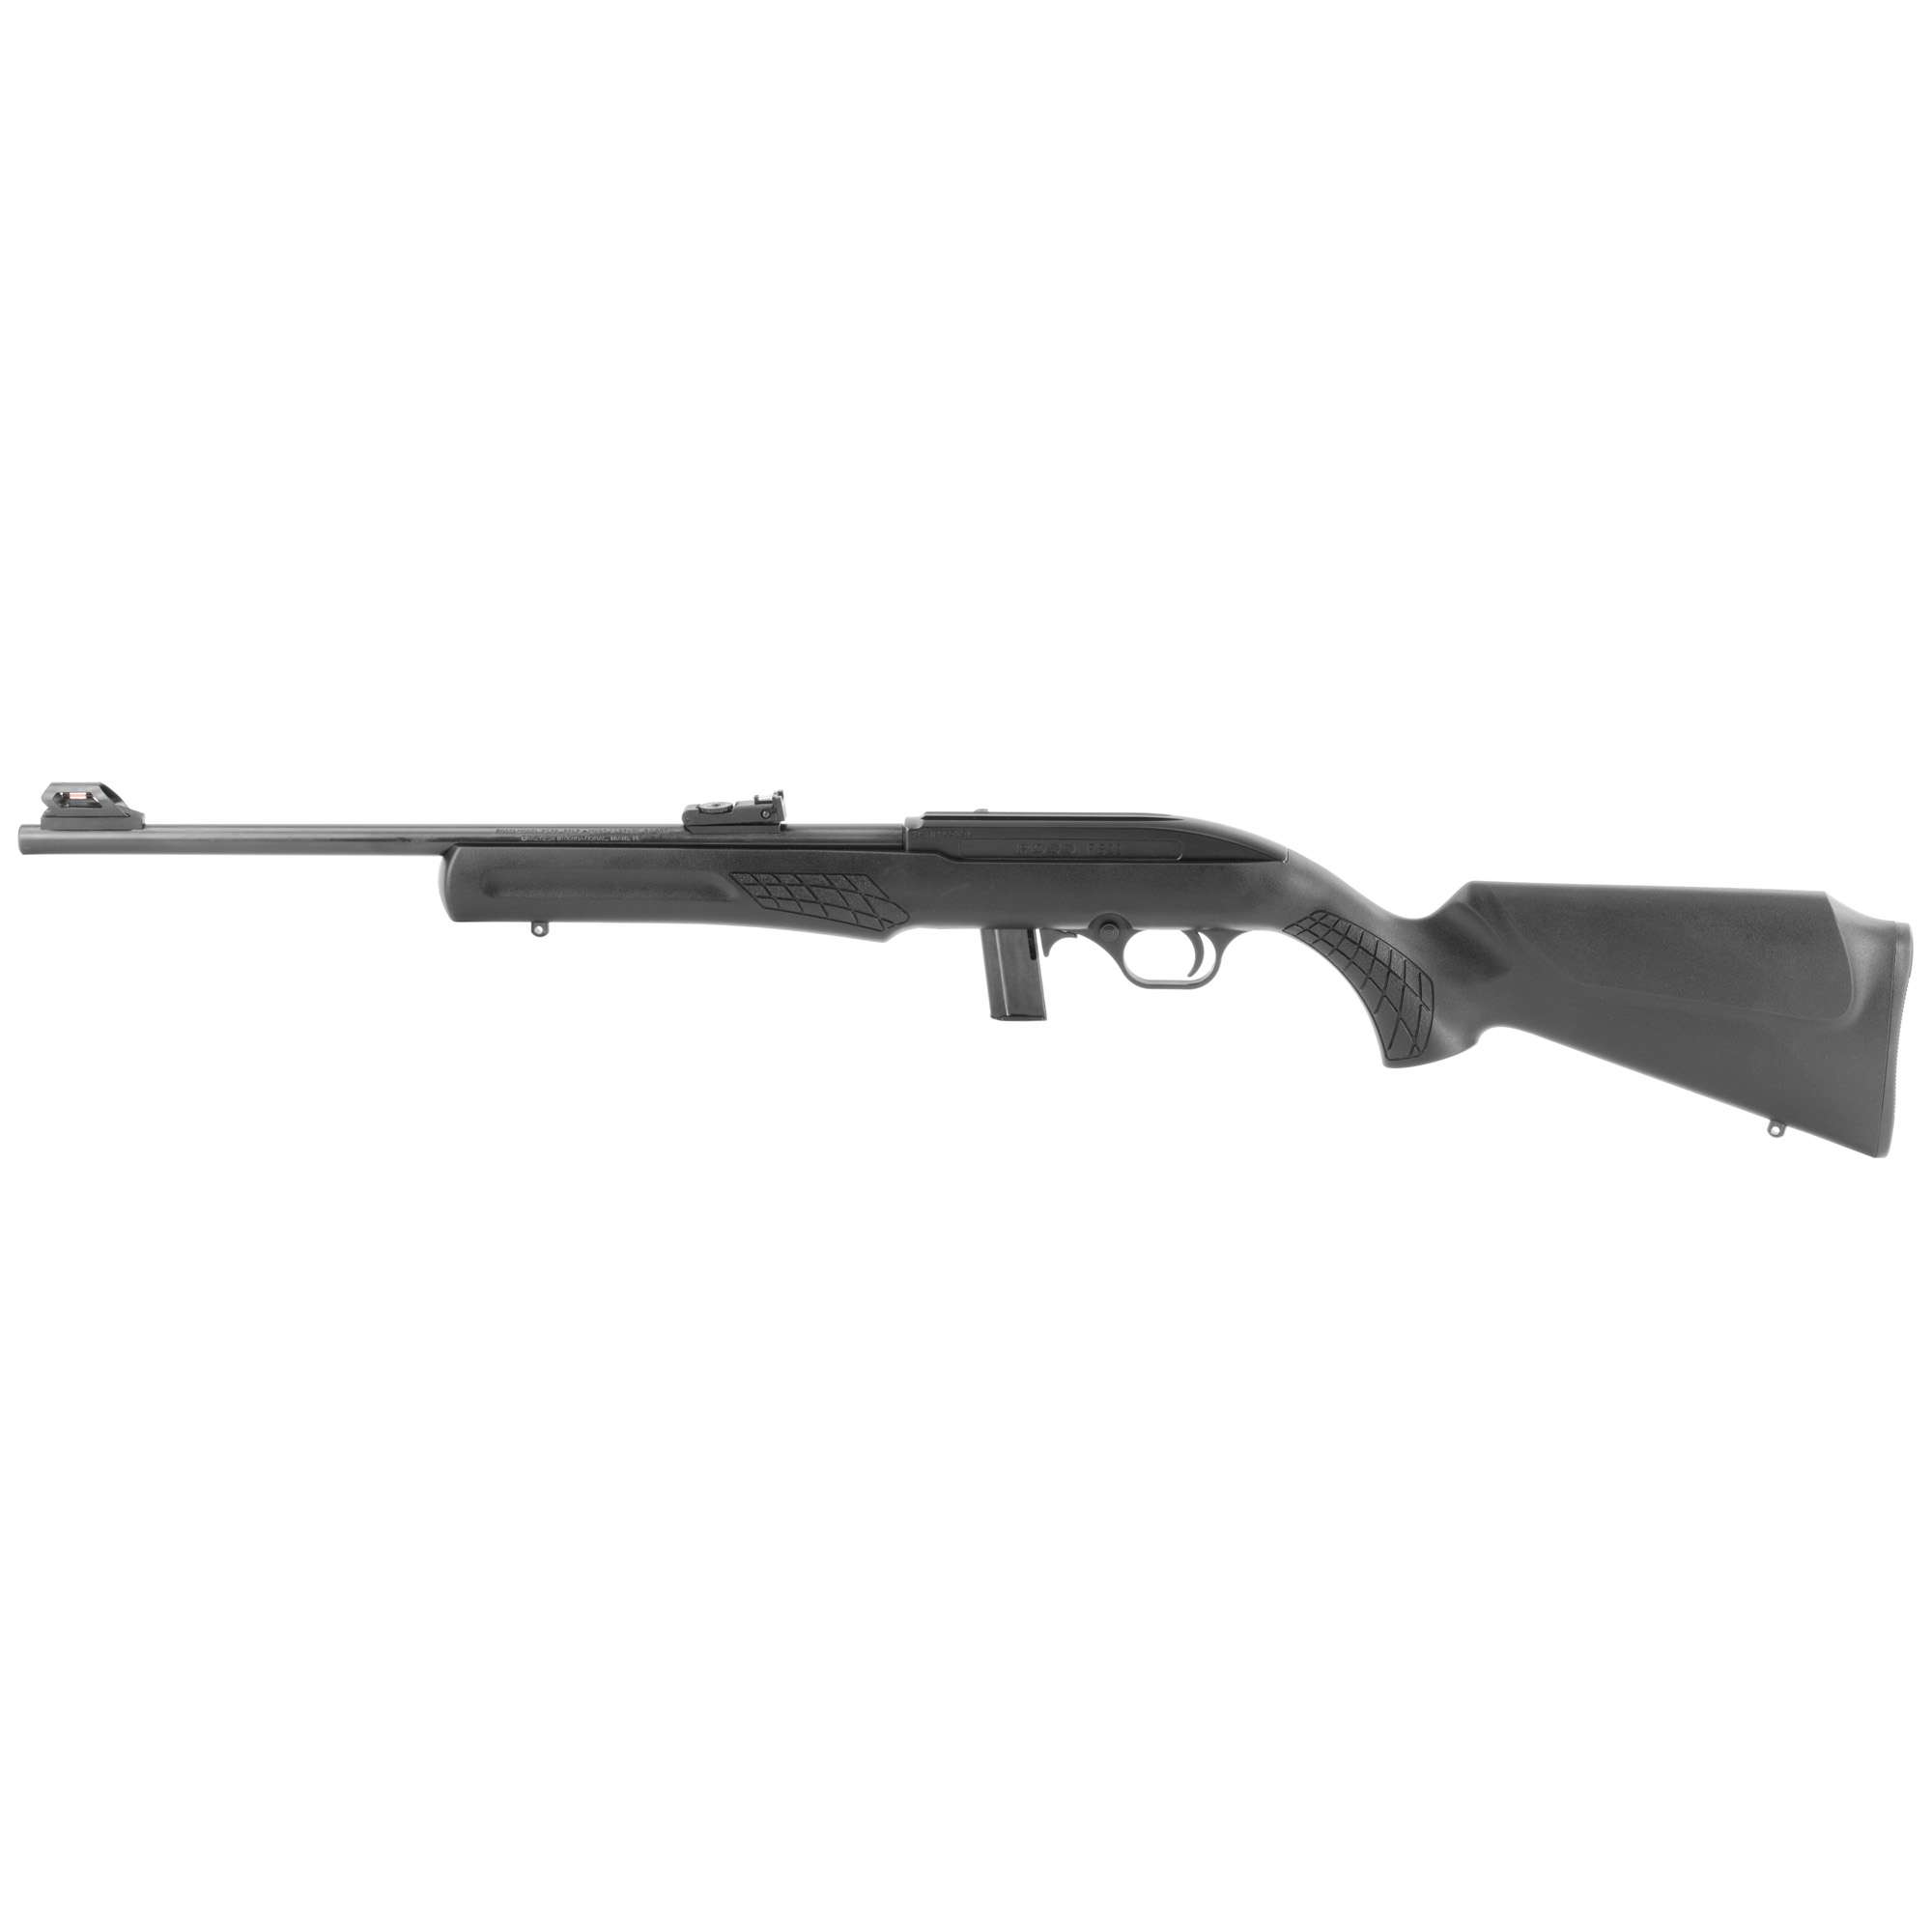 """The Rossi(R) RS22 is a reliable and accurate semi-automatic rimfire rifle with blowback action. The textured synthetic Monte Carlo stock is perfectly mated to an 18"""" free-float barrel for outstanding balance and feel. Offered in .22 LR the RS22 features fully adjustable fiber optic sights"""" 10 round detachable magazine"""" and the receiver has a 3/8"""" dovetail to accept scope mounts."""